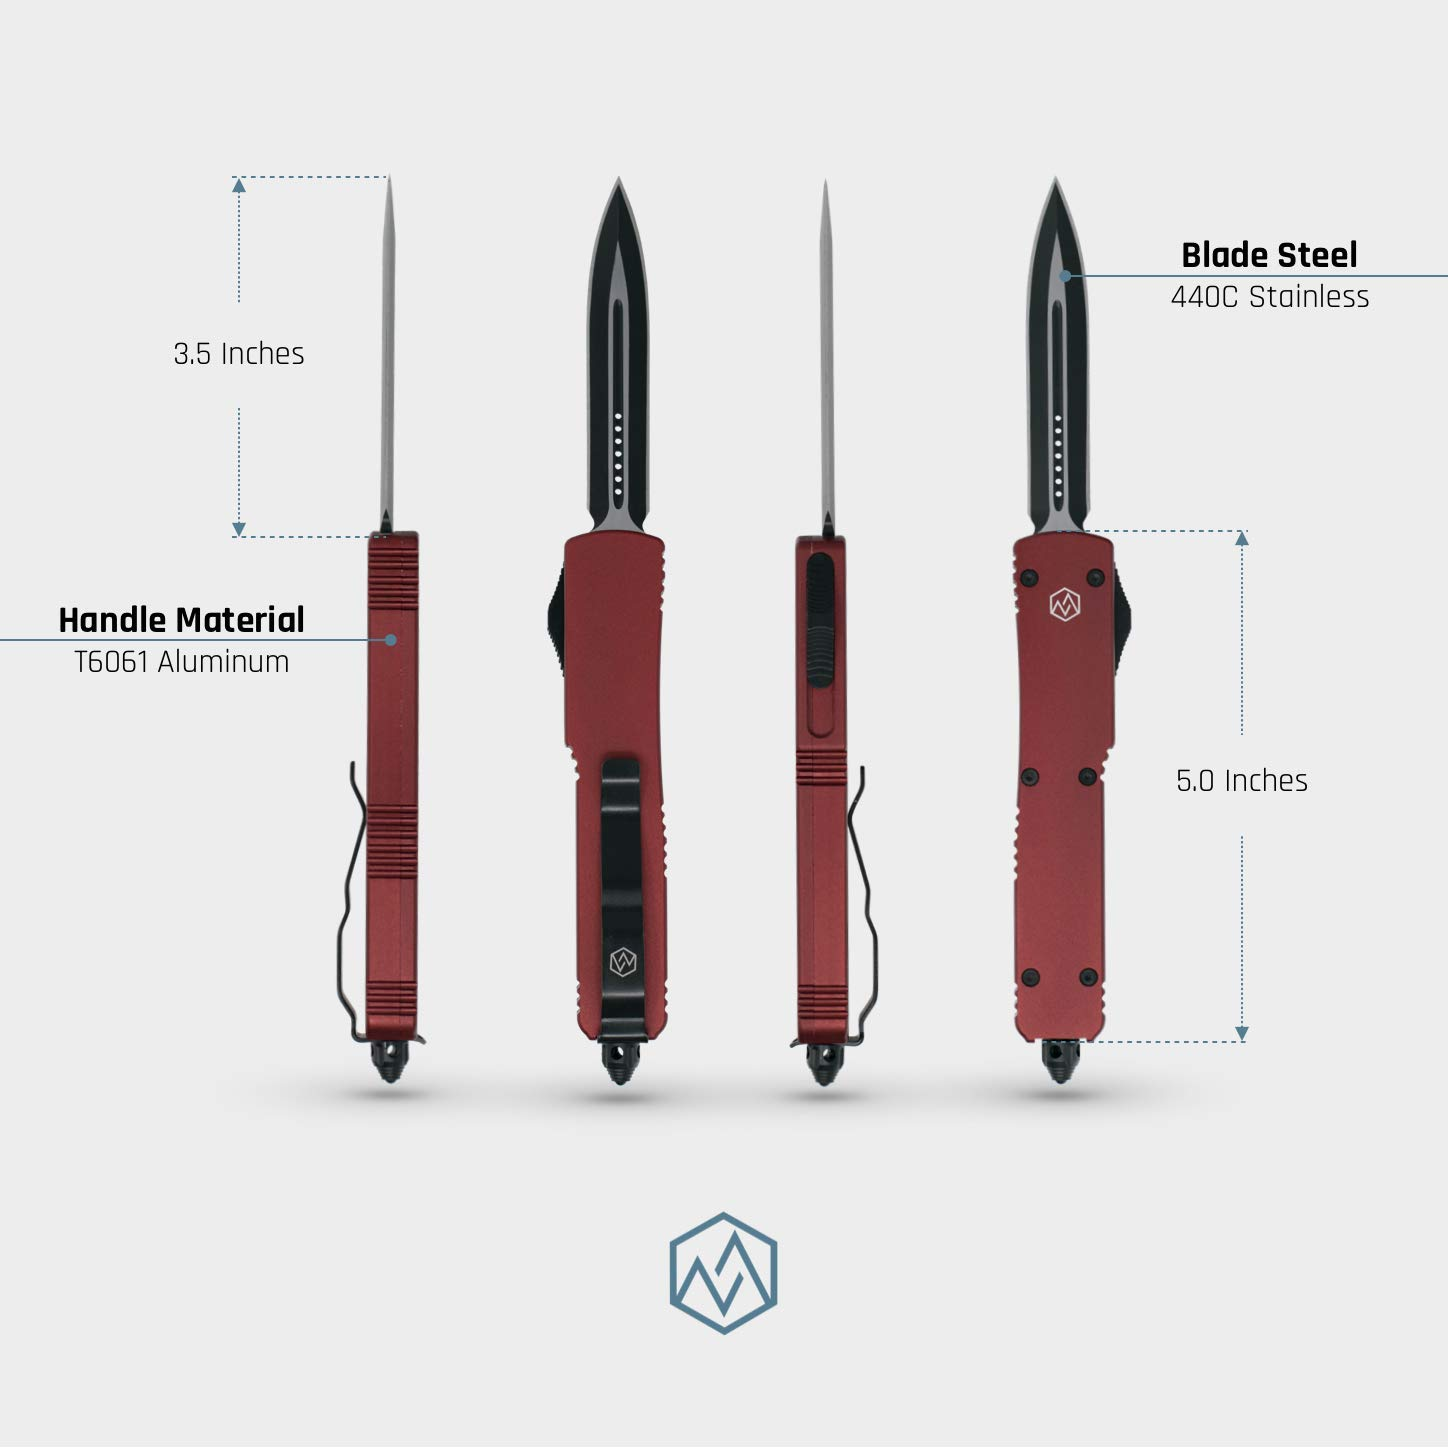 OTF Double Action Safety Knife (Red & Black Double Edge Blade) by OTF (Image #3)